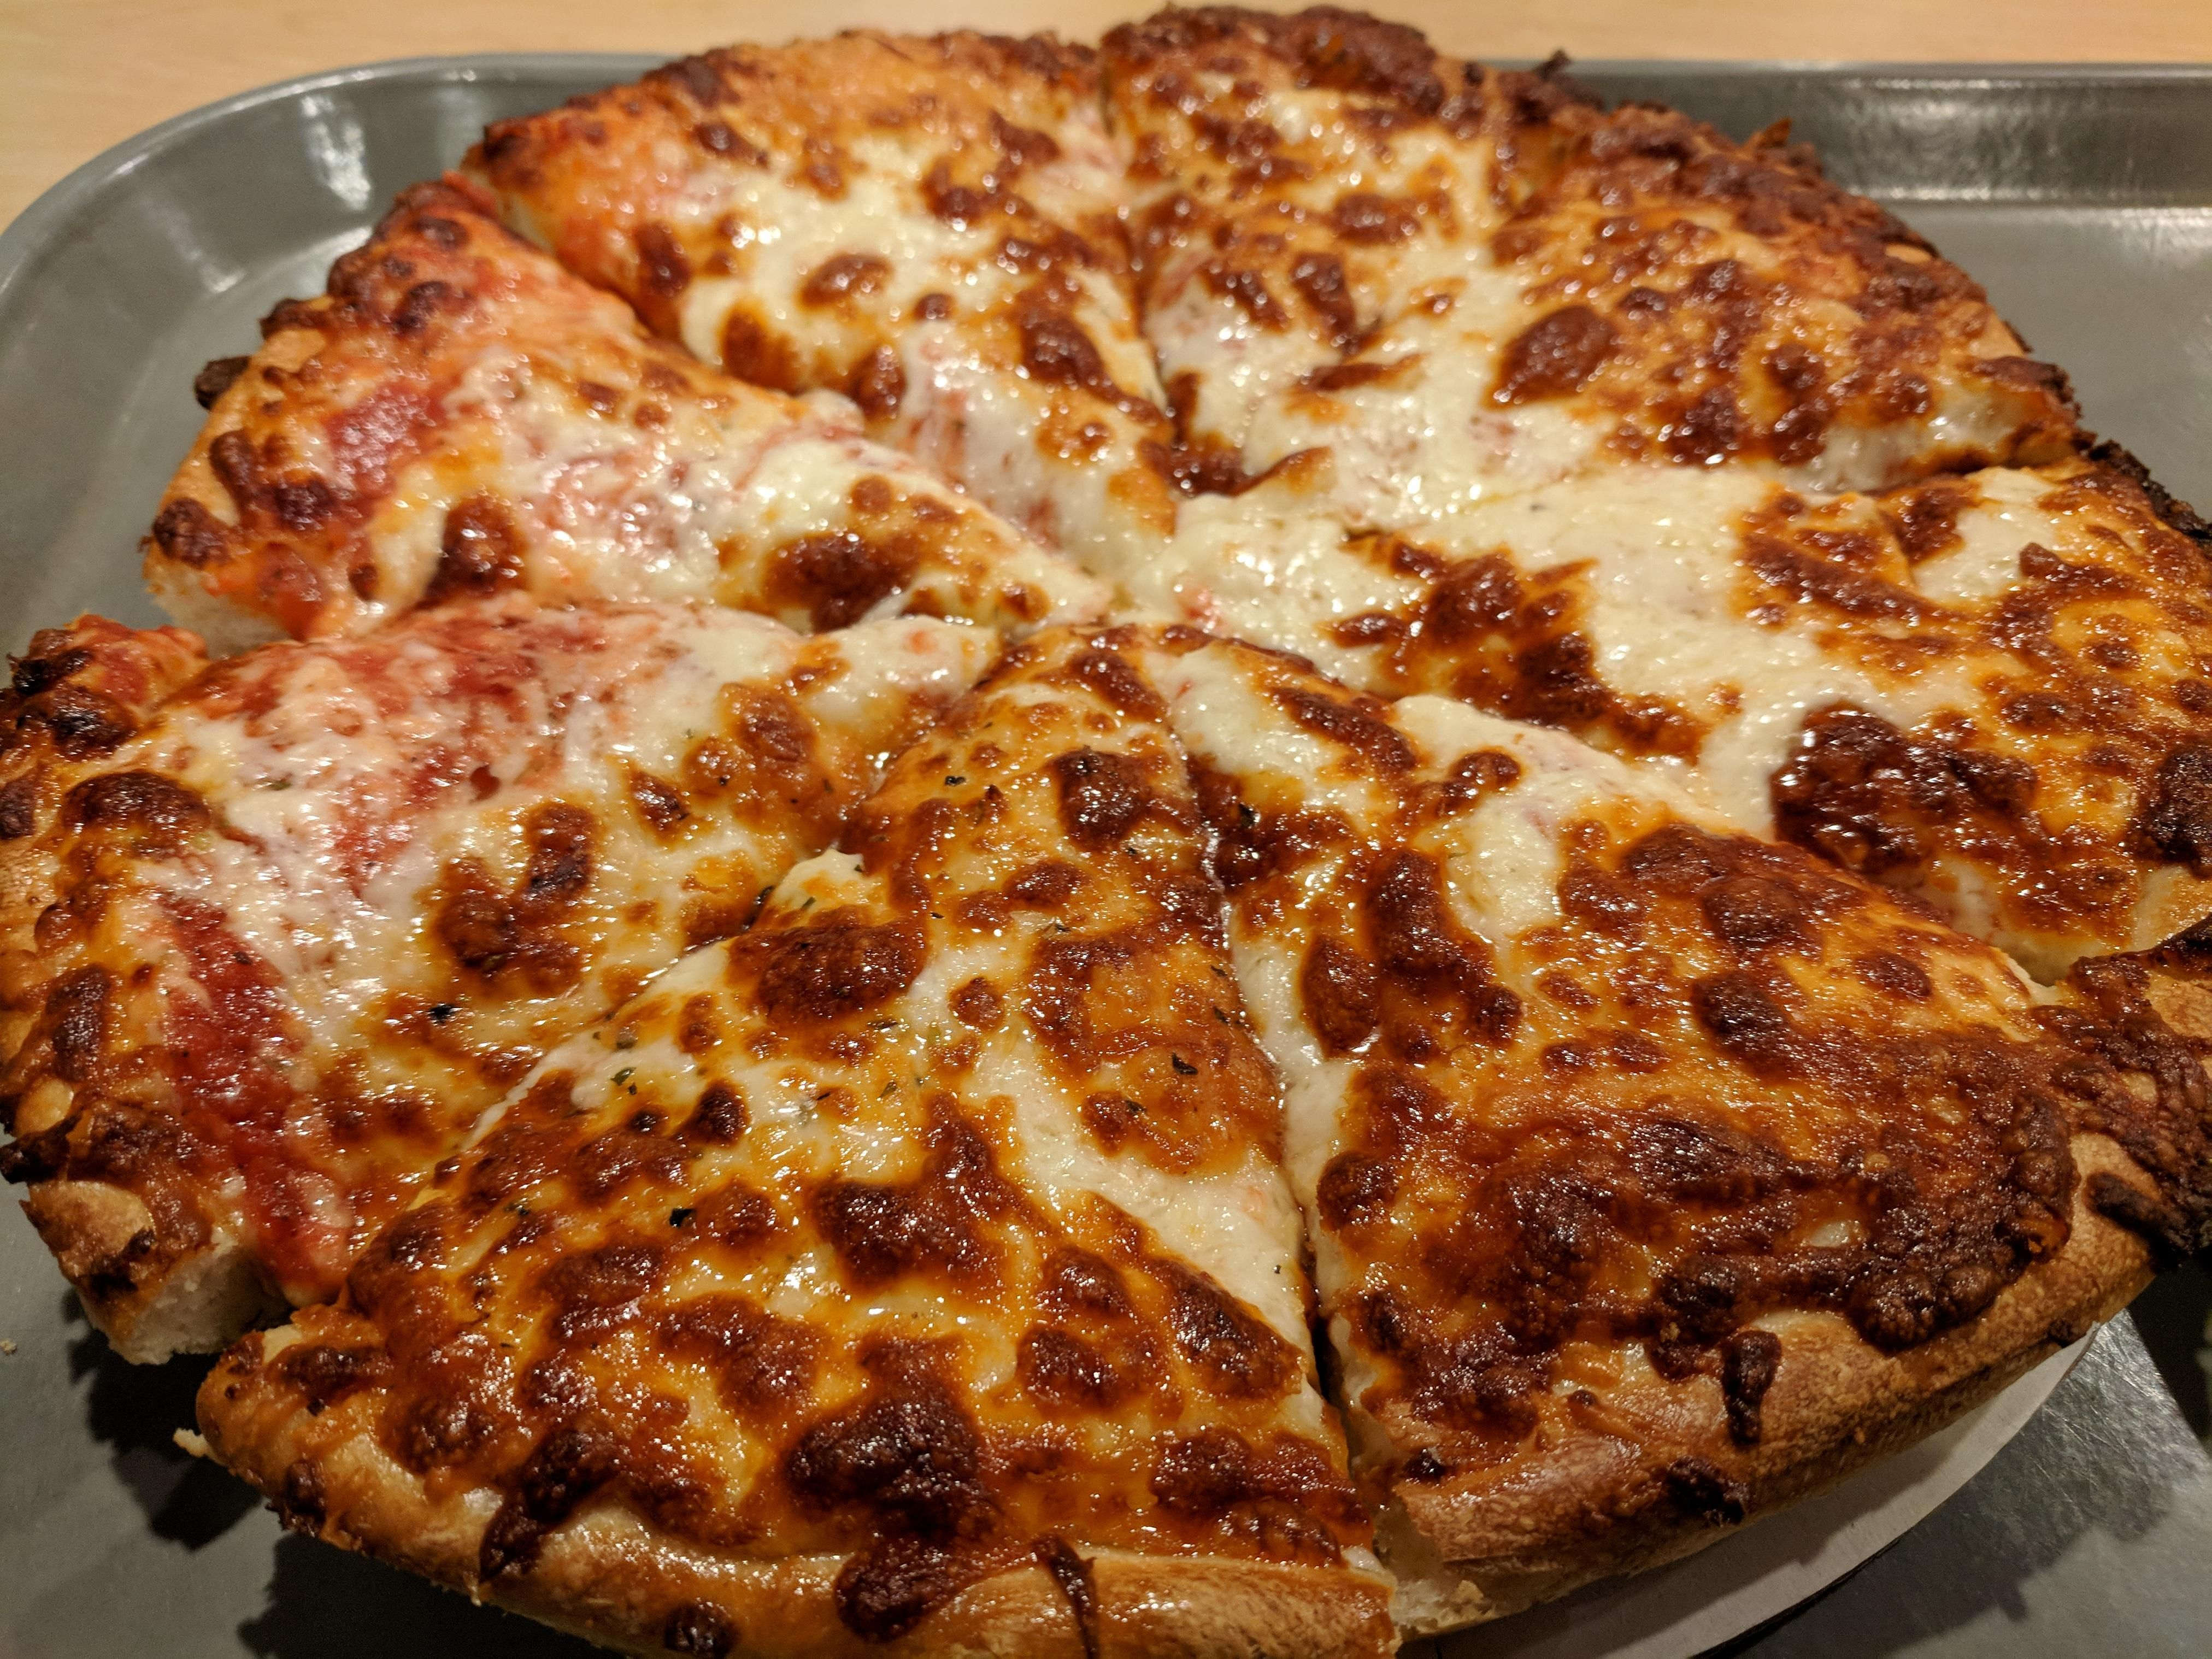 I Ate Cheese Pizza Tilton House Of Pizza Tilton Nh Recipes Cheese Pizza Great Pizza